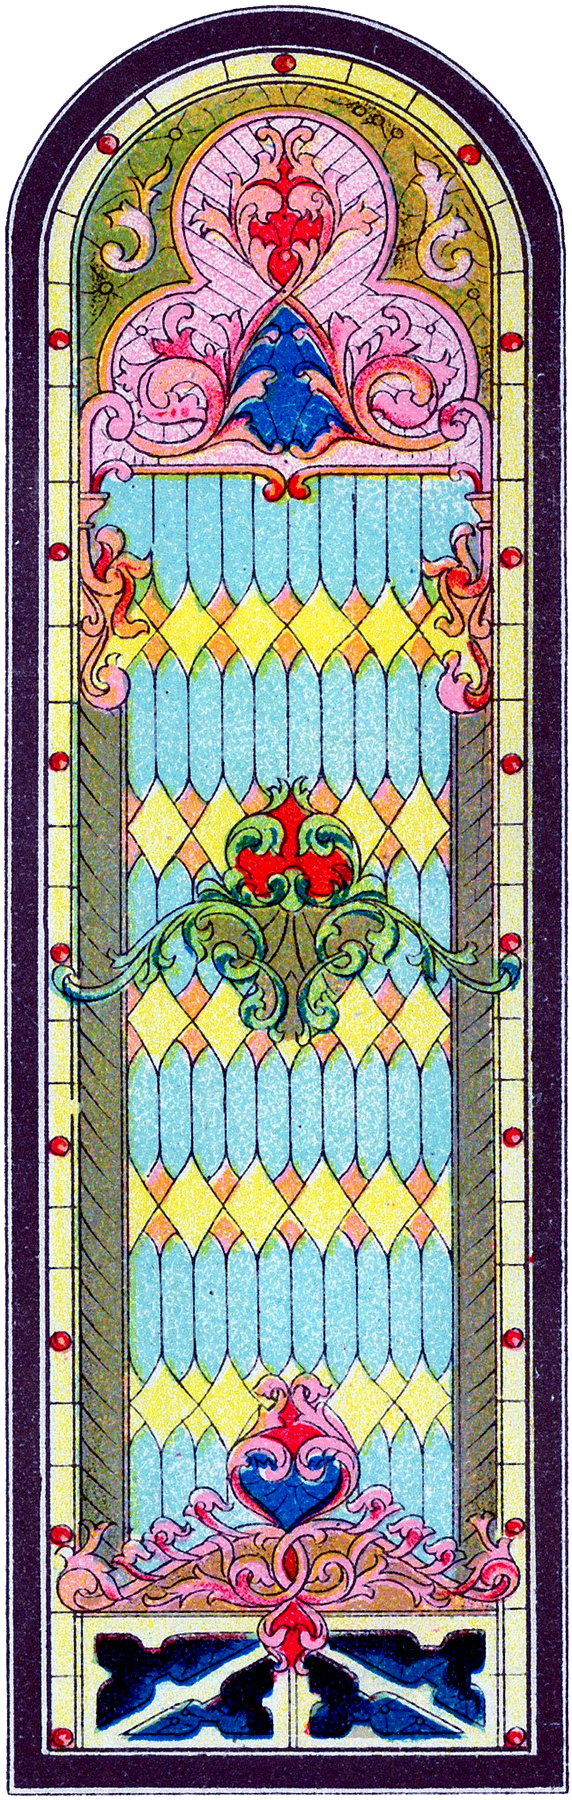 Stained Glass Church Window Image